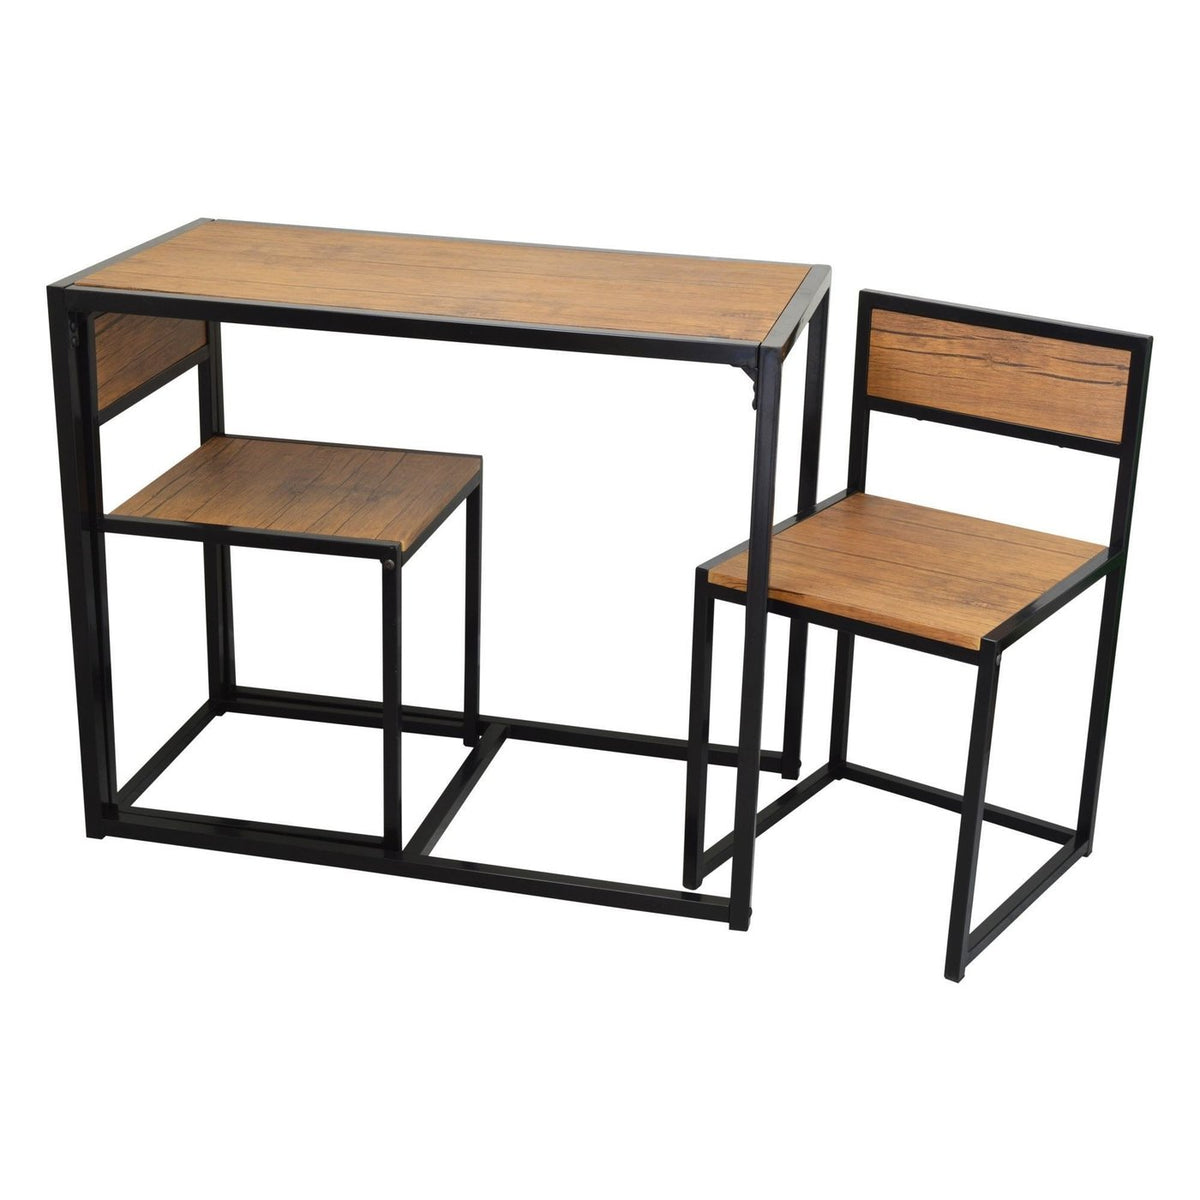 Harbour Housewares 2 Person Space Saving, Compact, Kitchen Dining table & Chairs Set